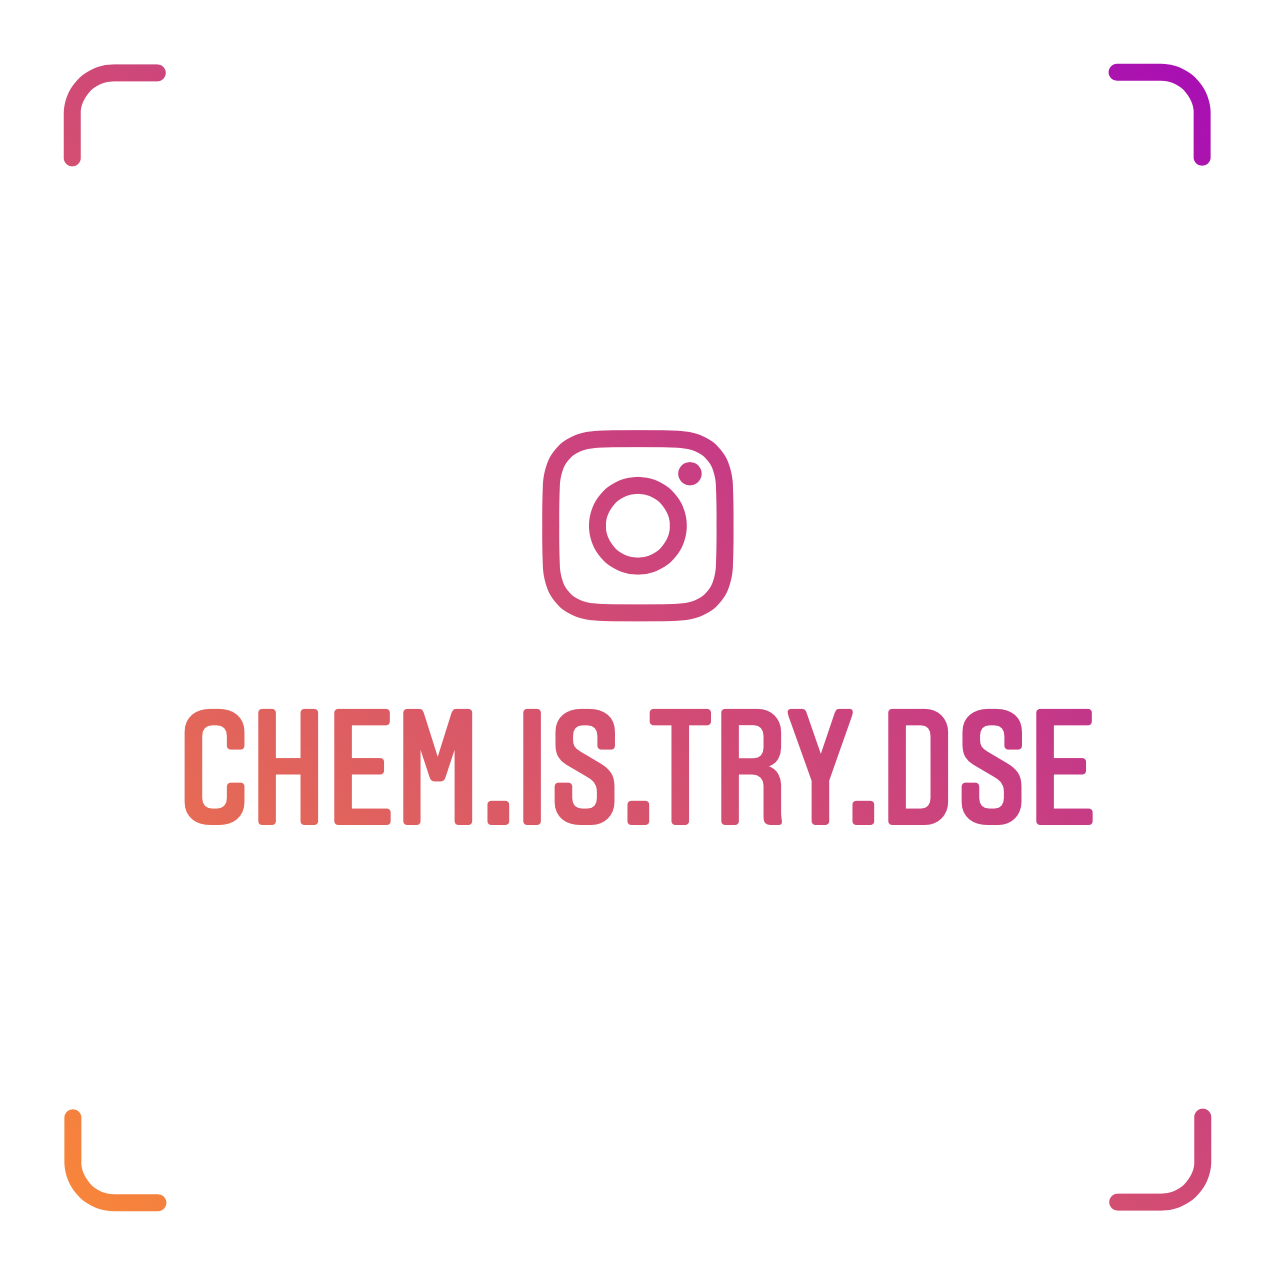 chem.is.try.dse_nametag